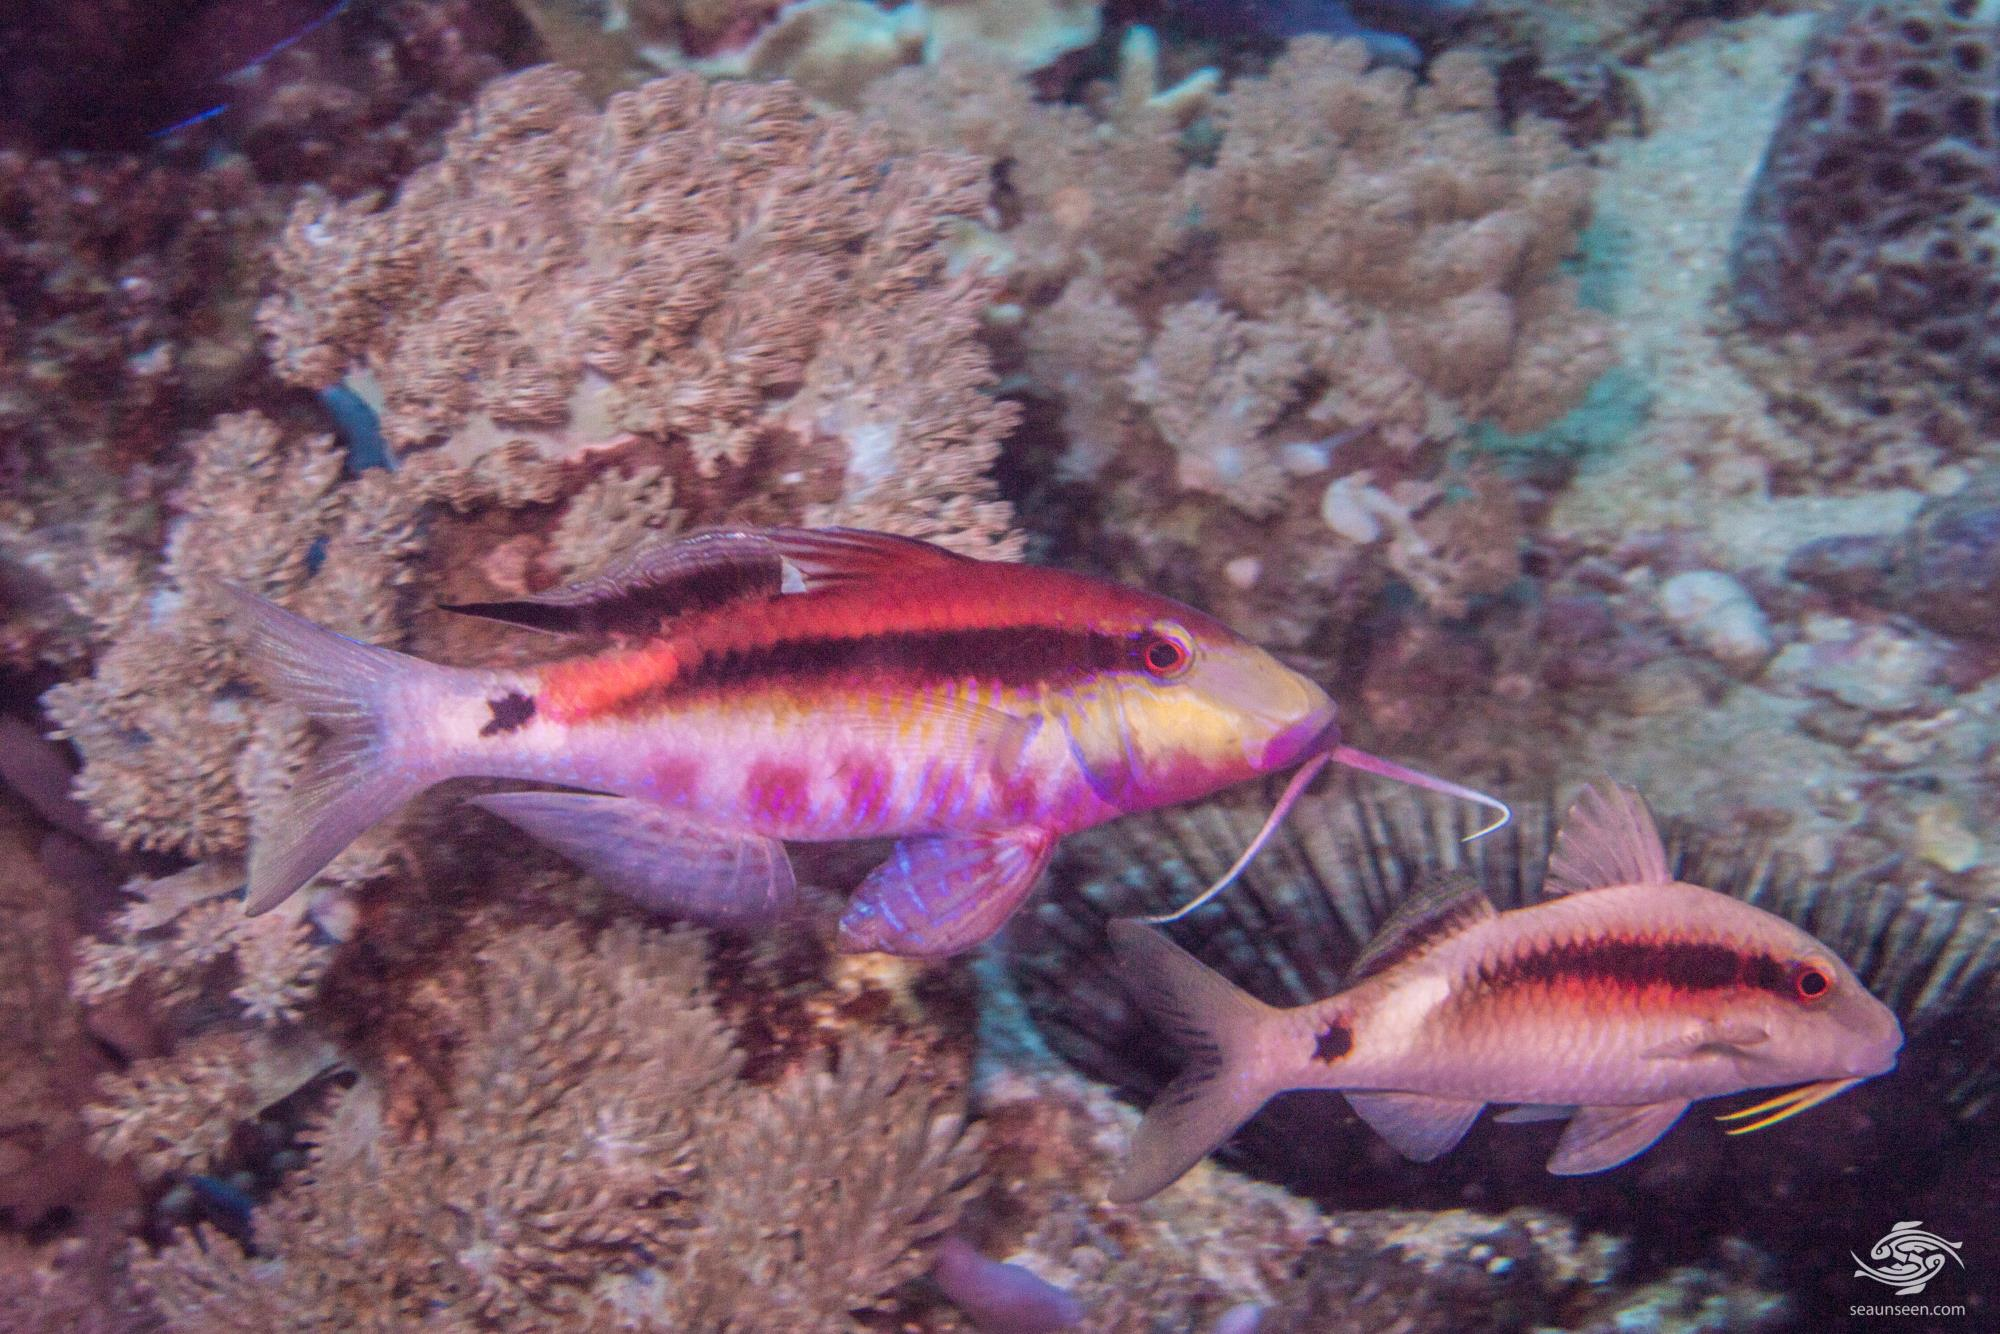 Longbarbel Goatfish (Parupeneus macronemus) is also known as the Band-dot goatfish, and Long-barbeled goatfish